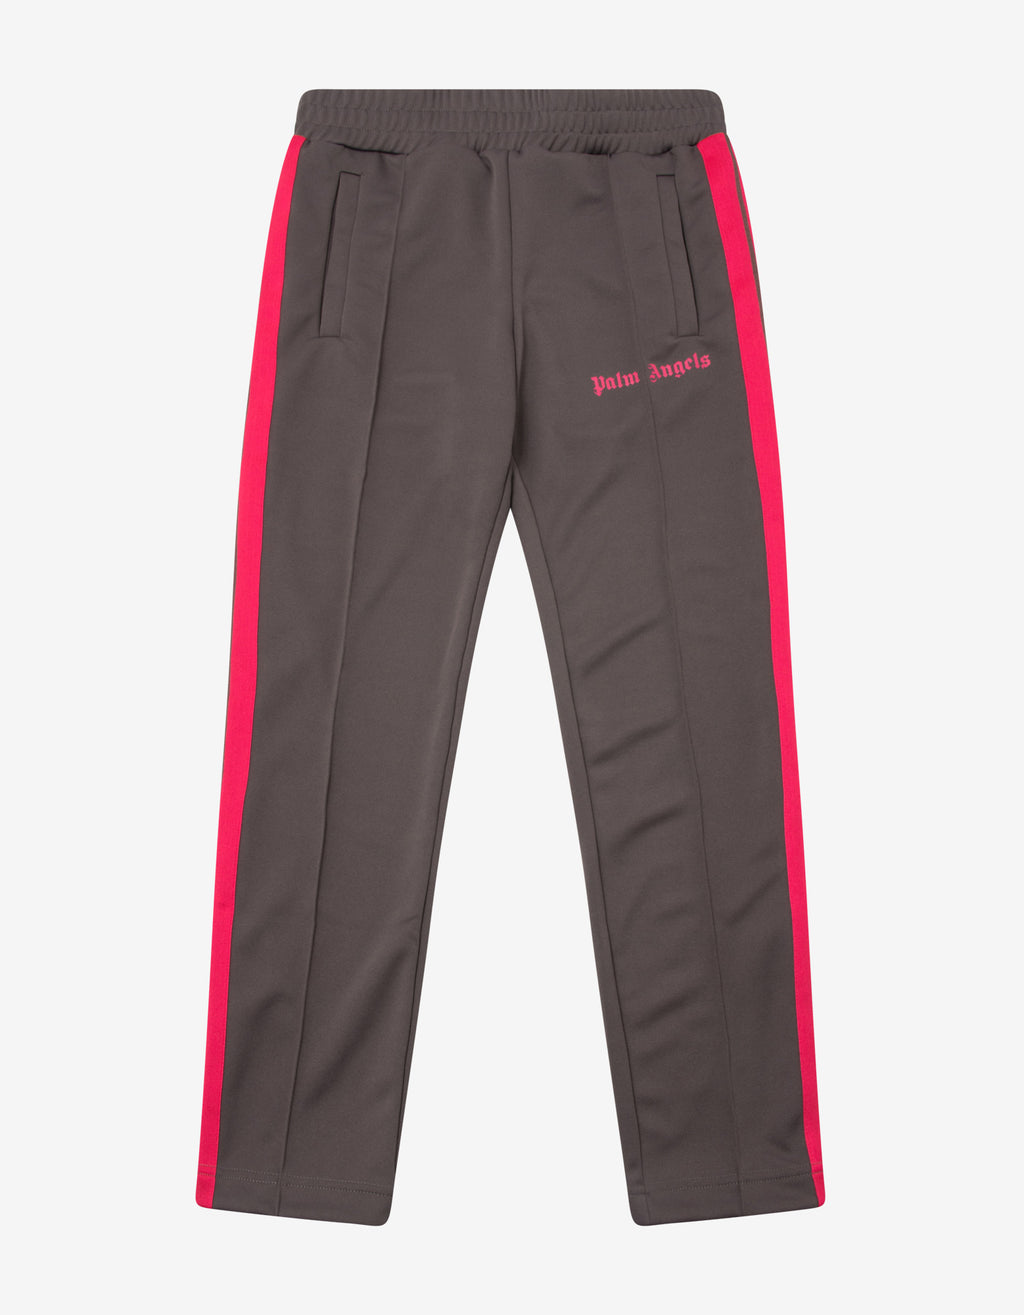 Grey Track Pants with Magenta Stripes